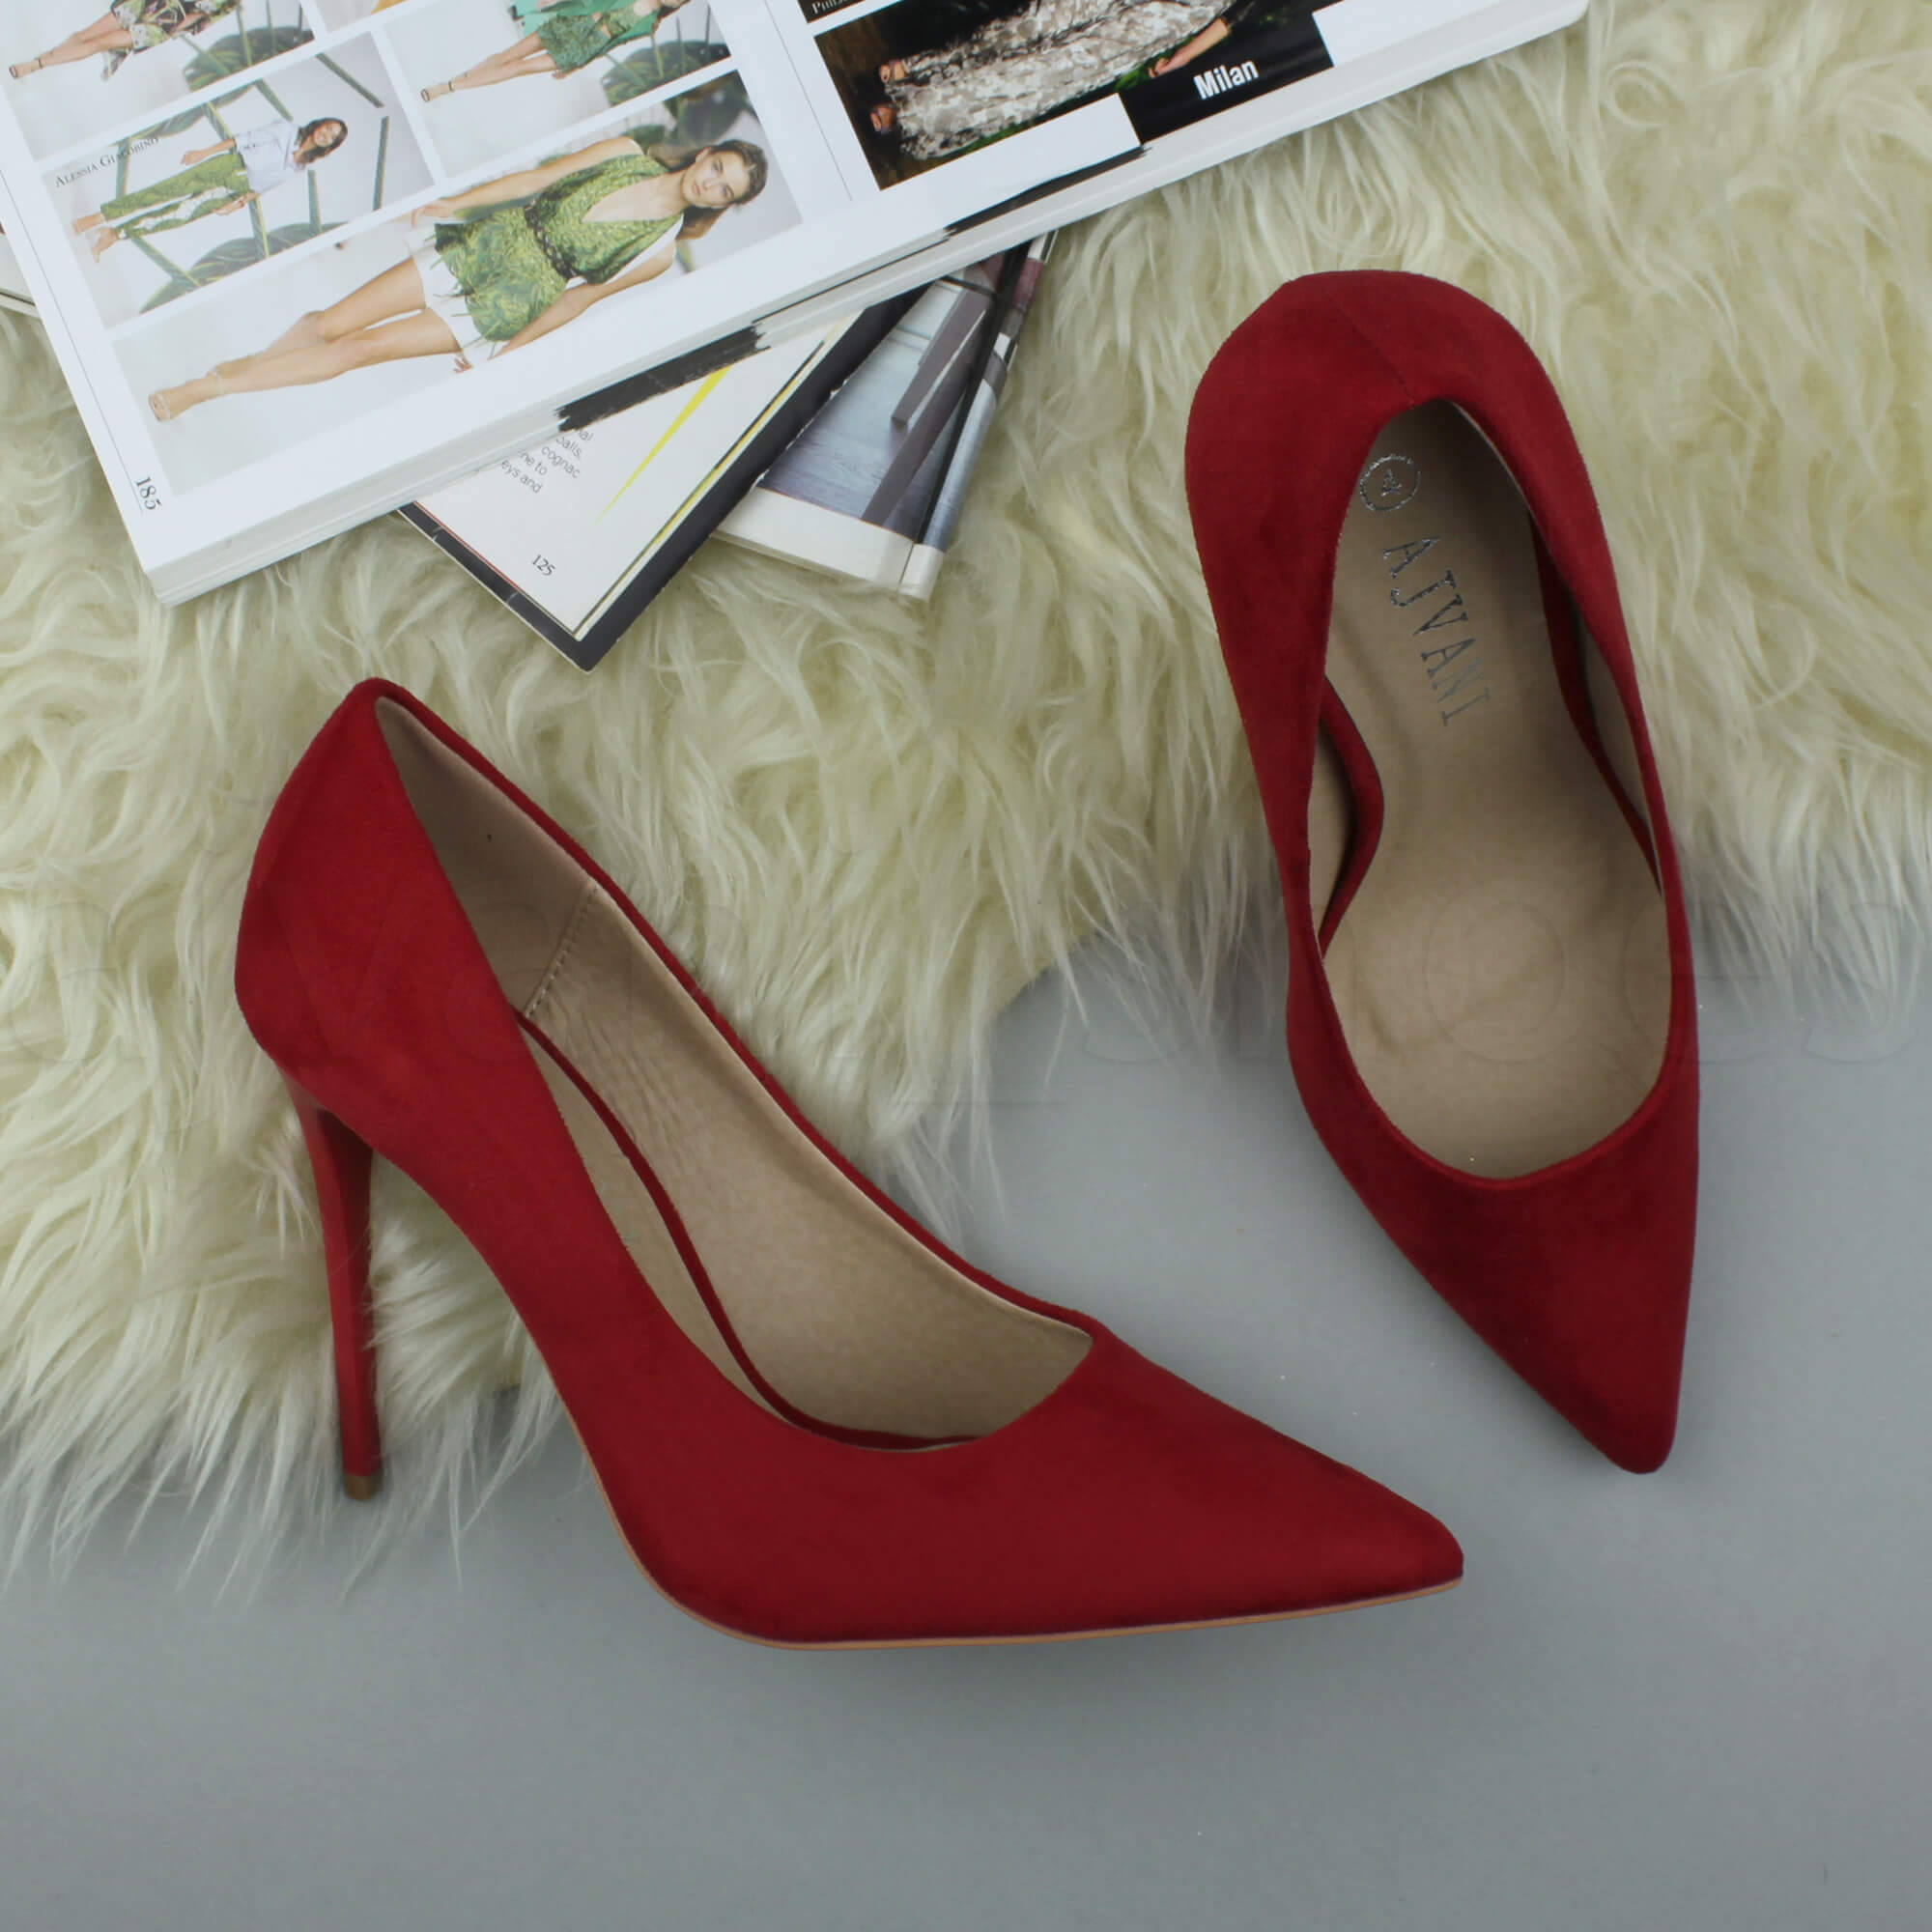 WOMENS-LADIES-HIGH-HEEL-POINTED-CONTRAST-COURT-SMART-PARTY-WORK-SHOES-PUMPS-SIZE thumbnail 171